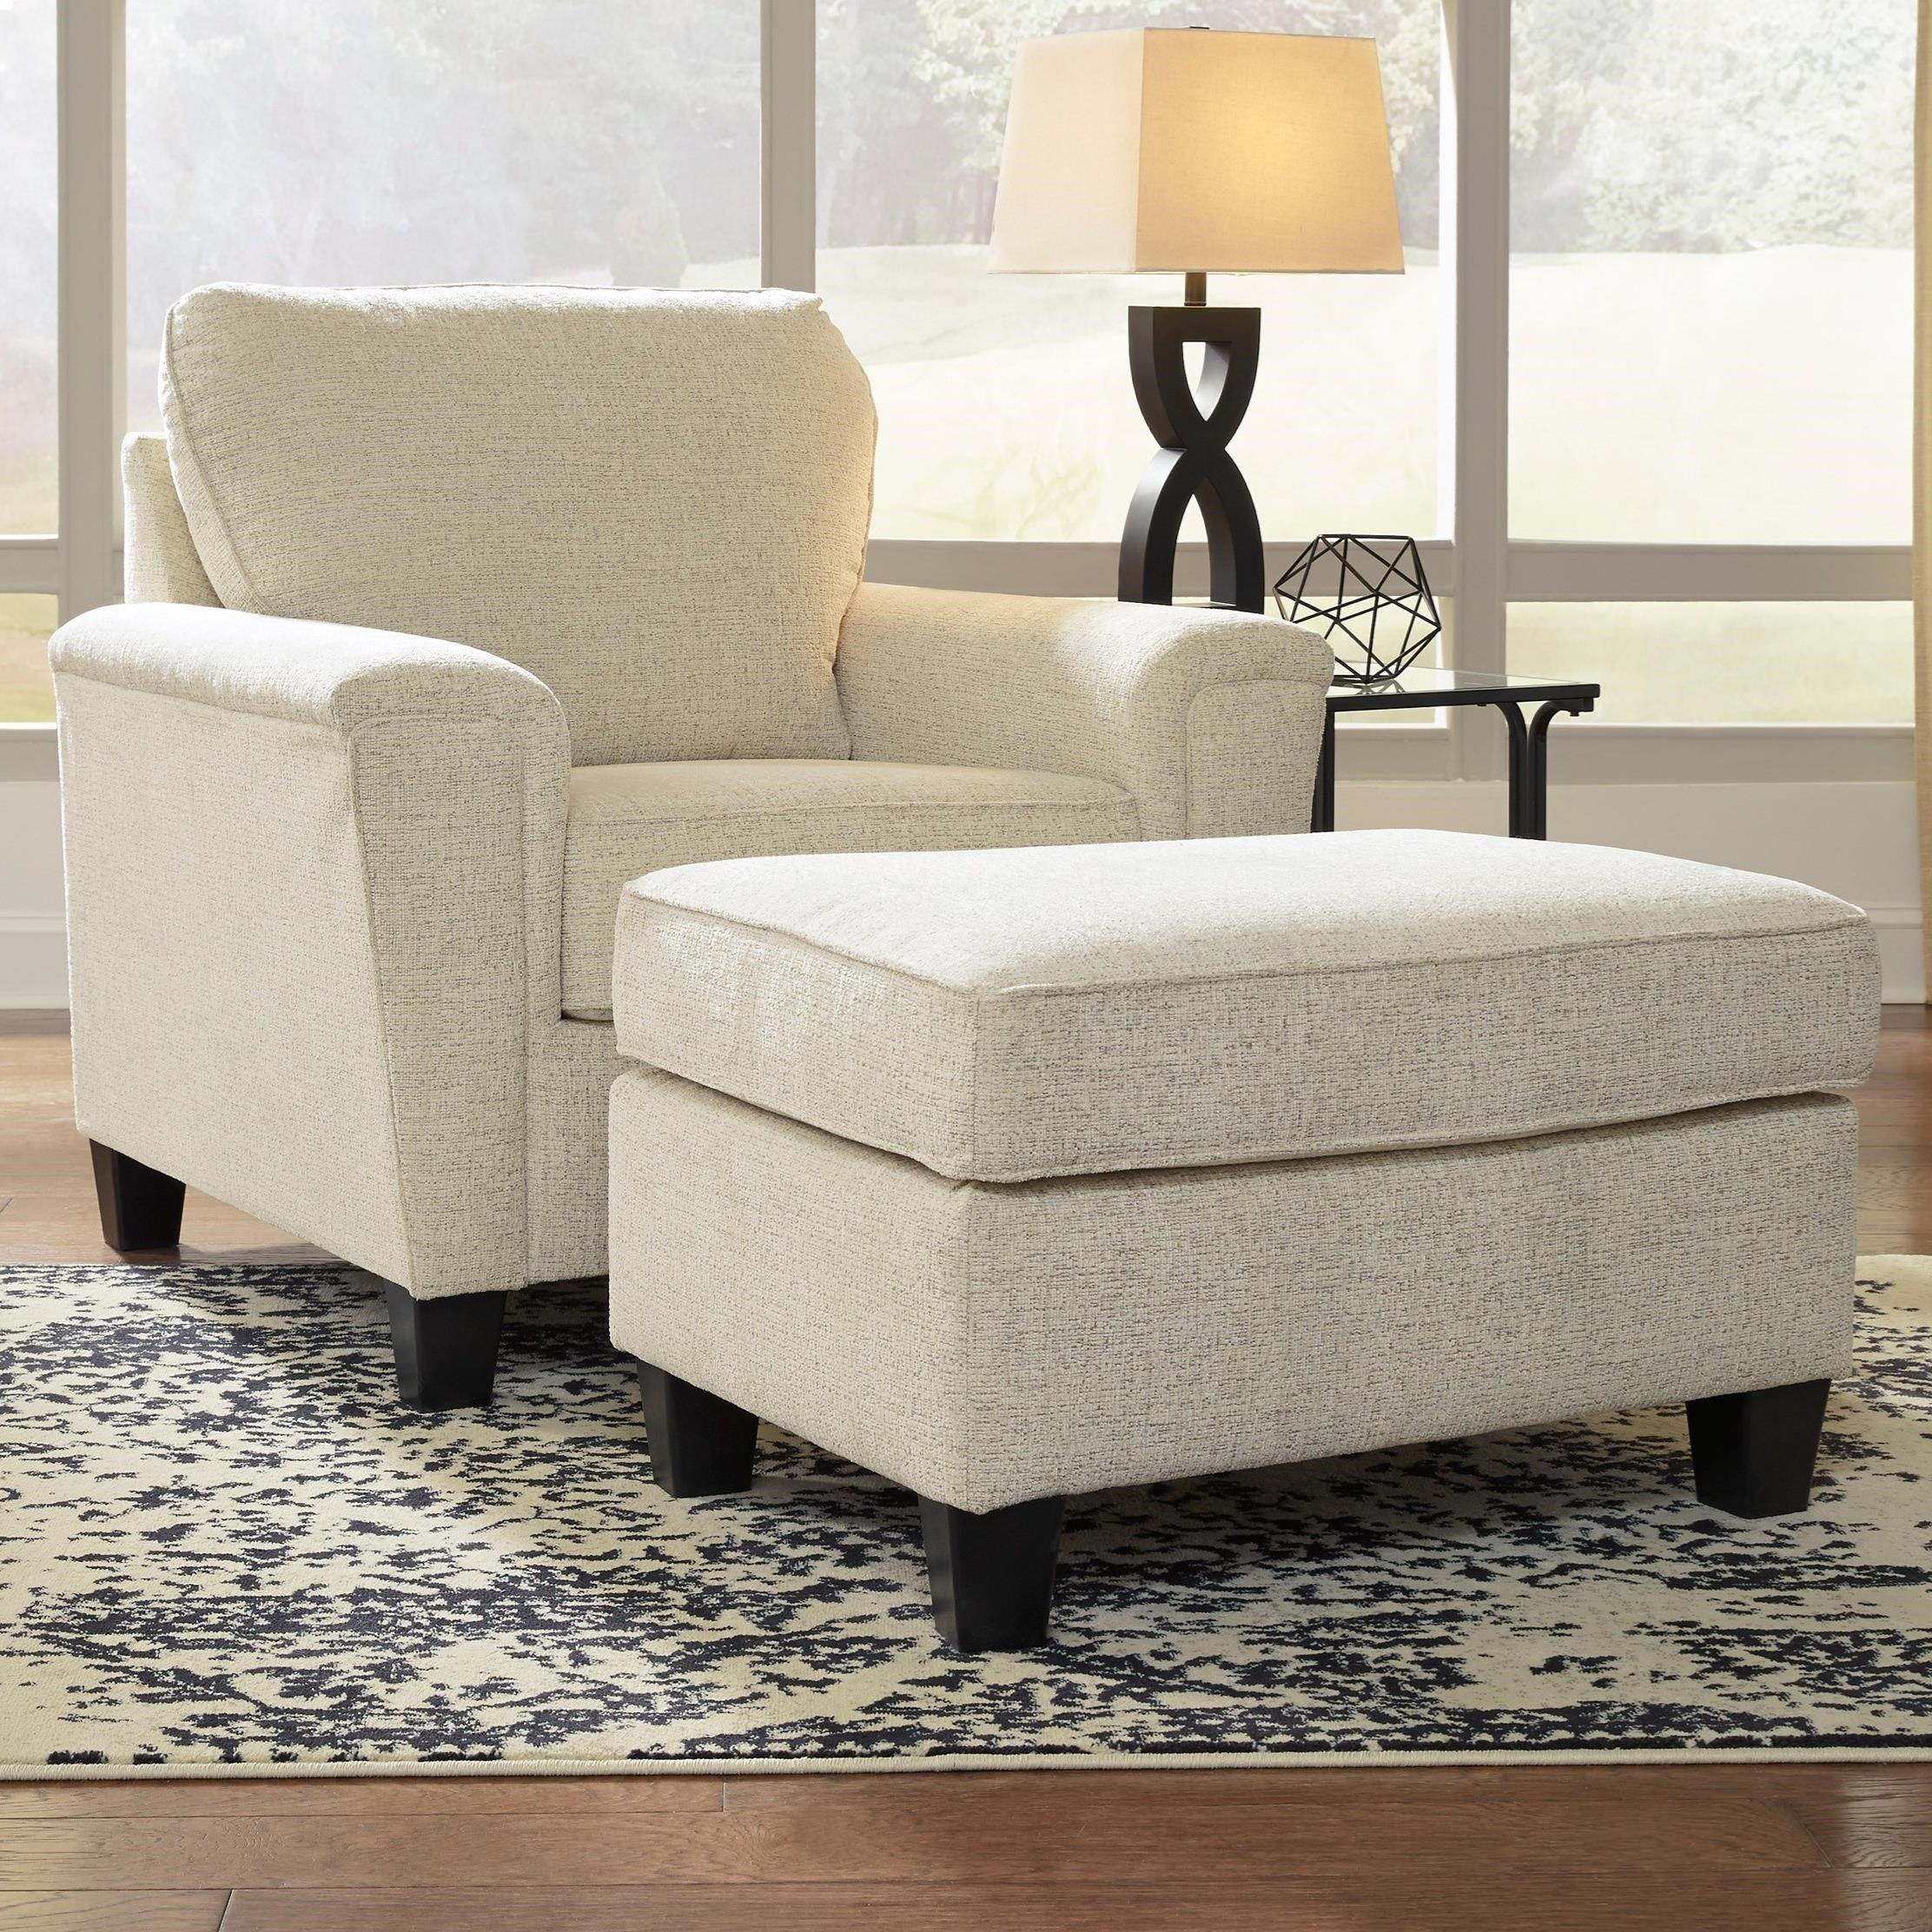 Abinger Chair & Ottoman by Signature Design by Ashley at Reid's Furniture